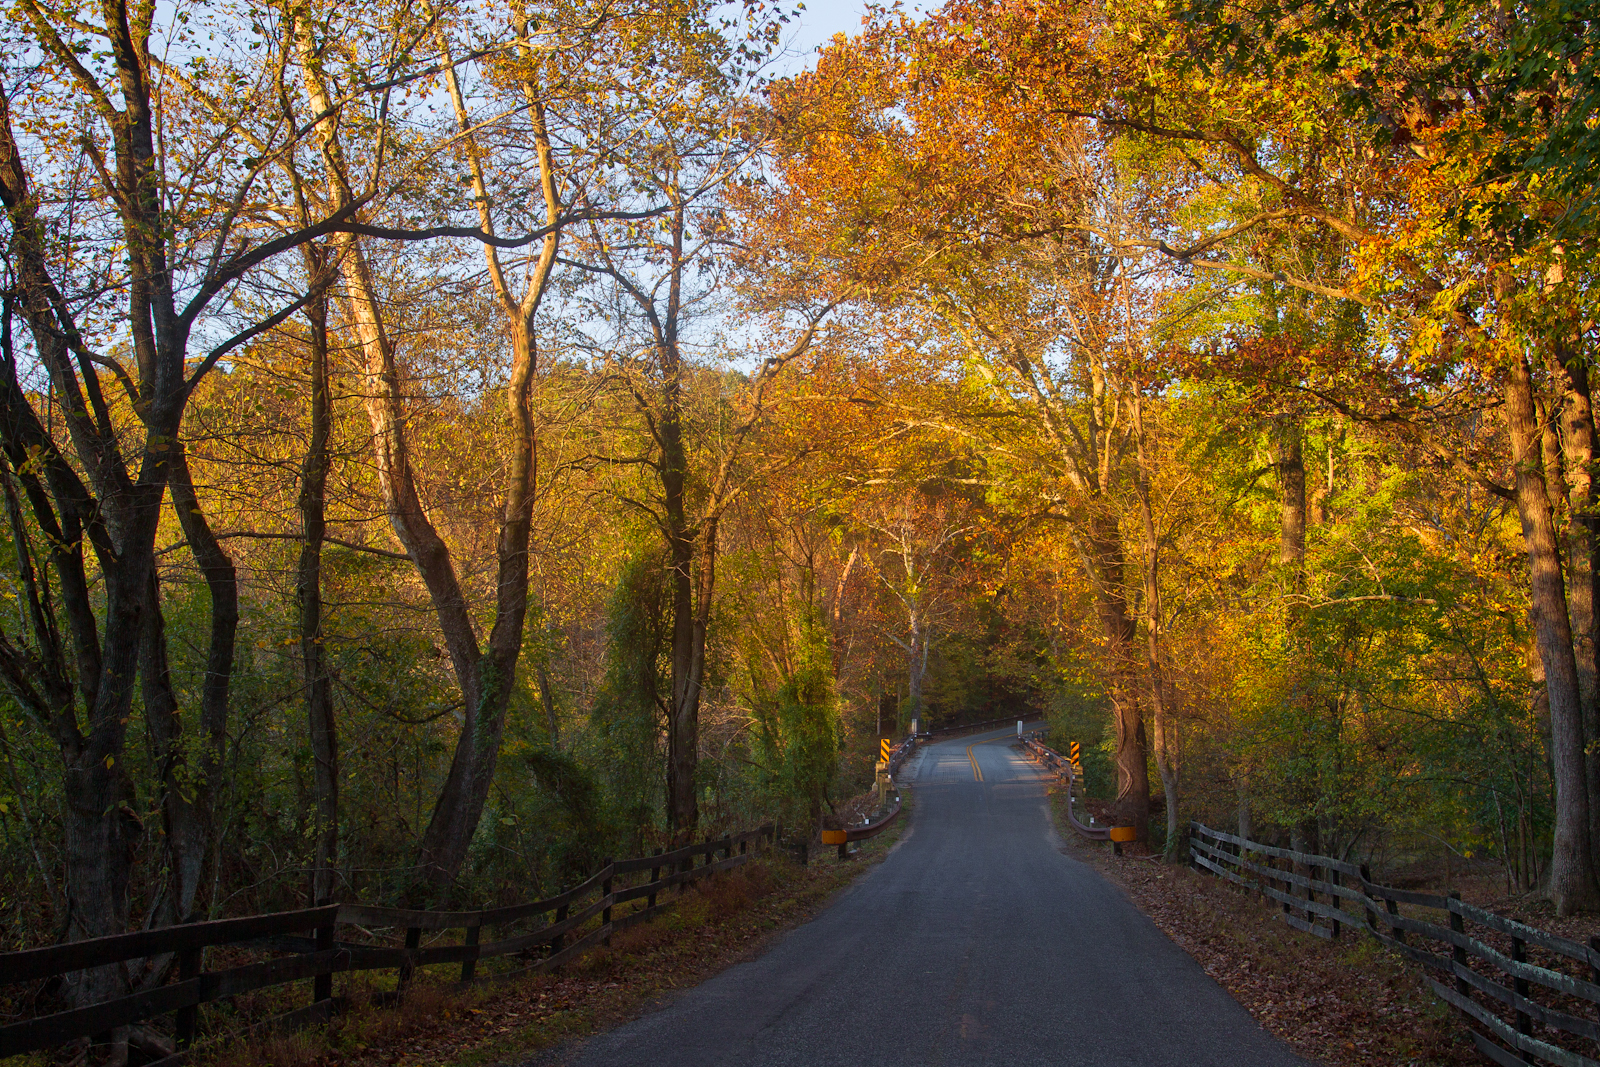 Autumn-country-backroad-2-50-of-1-4